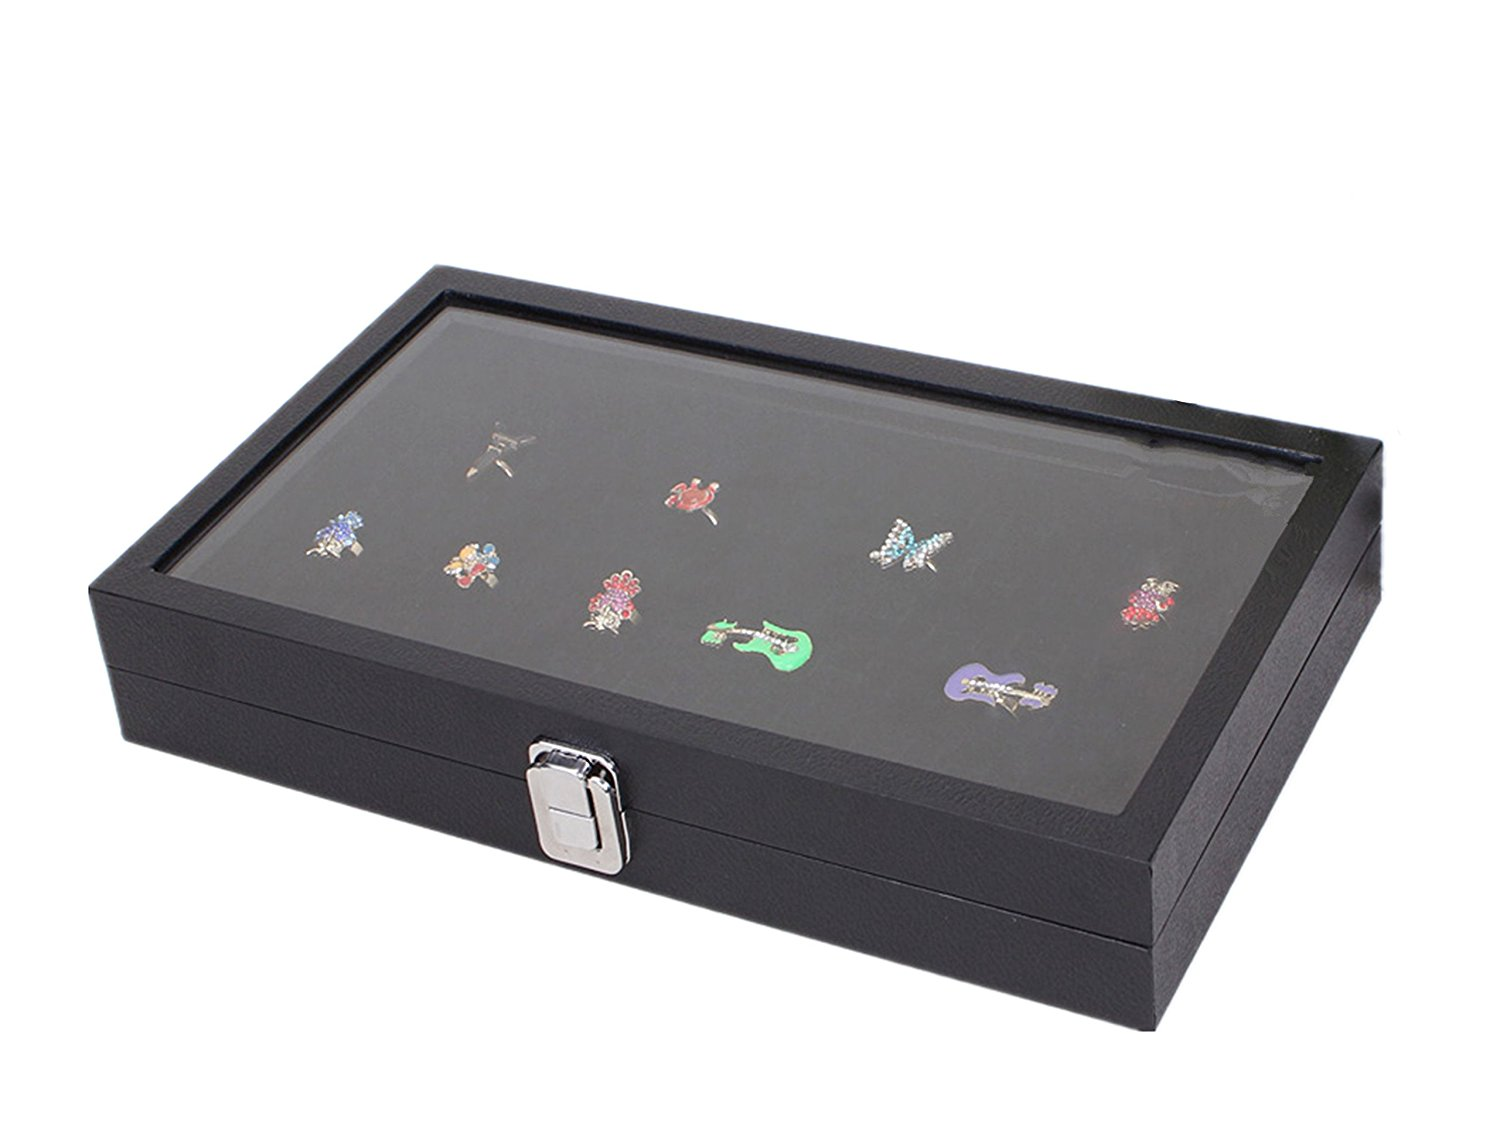 72 Slot Jewelry Display Case Glass Top Ring Insert Display Showcase Ring Tray, Black